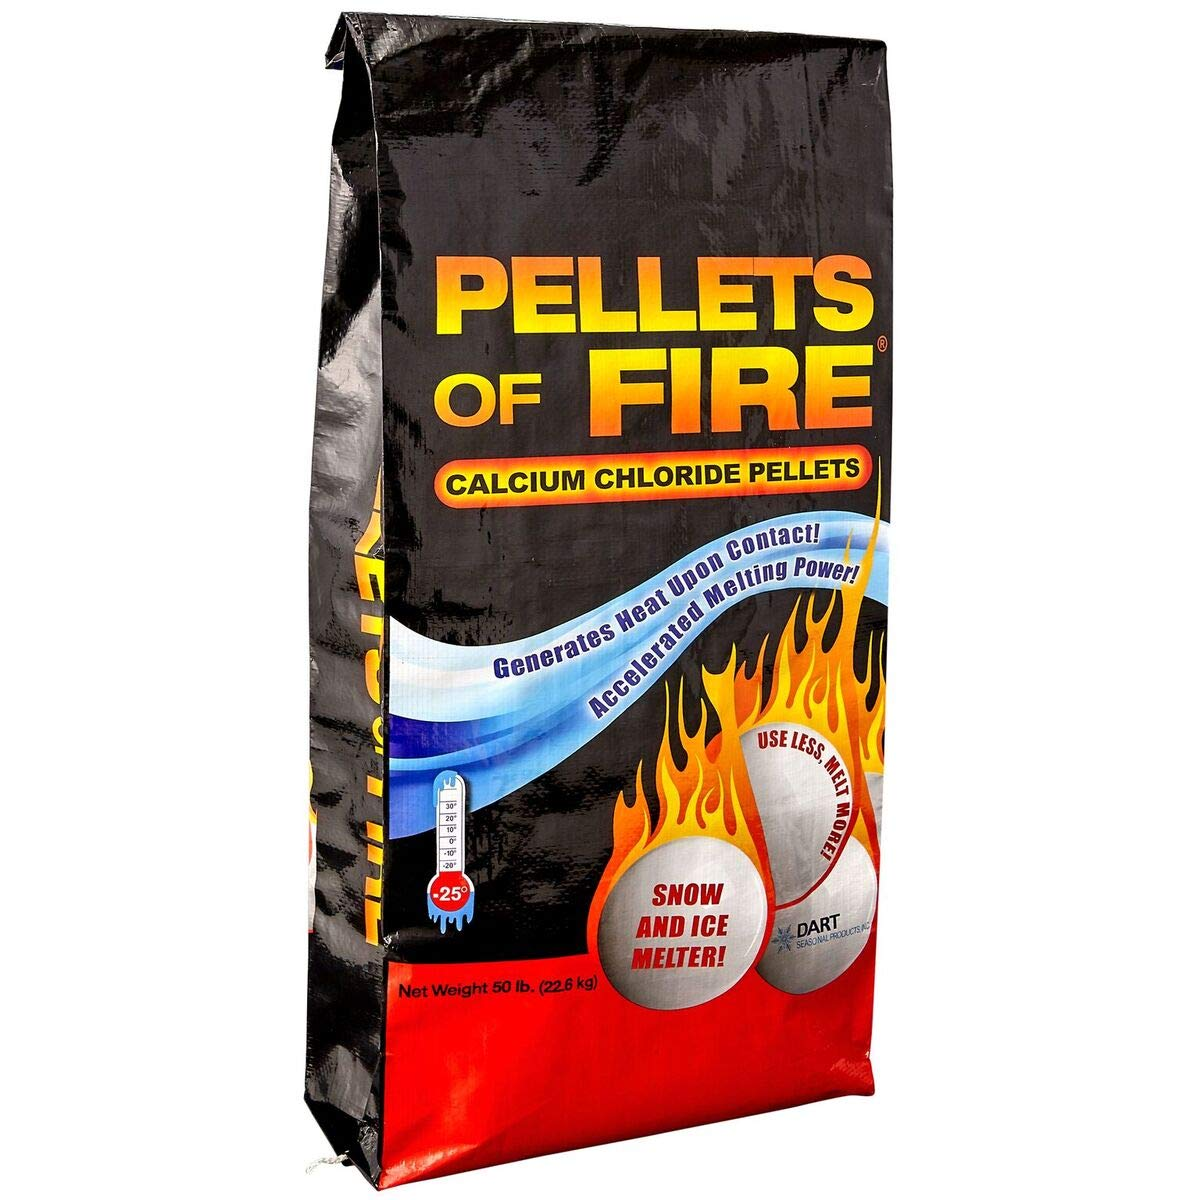 PELLETS OF FIRE Snow and Ice Melter - Calcium Chloride Pellets - Heat Generating Rock Salt - Concrete and Surface Safe - Industrial Grade - Home and Commercial Use - Works in -25° F (50lbs Bag) by PELLETS OF FIRE